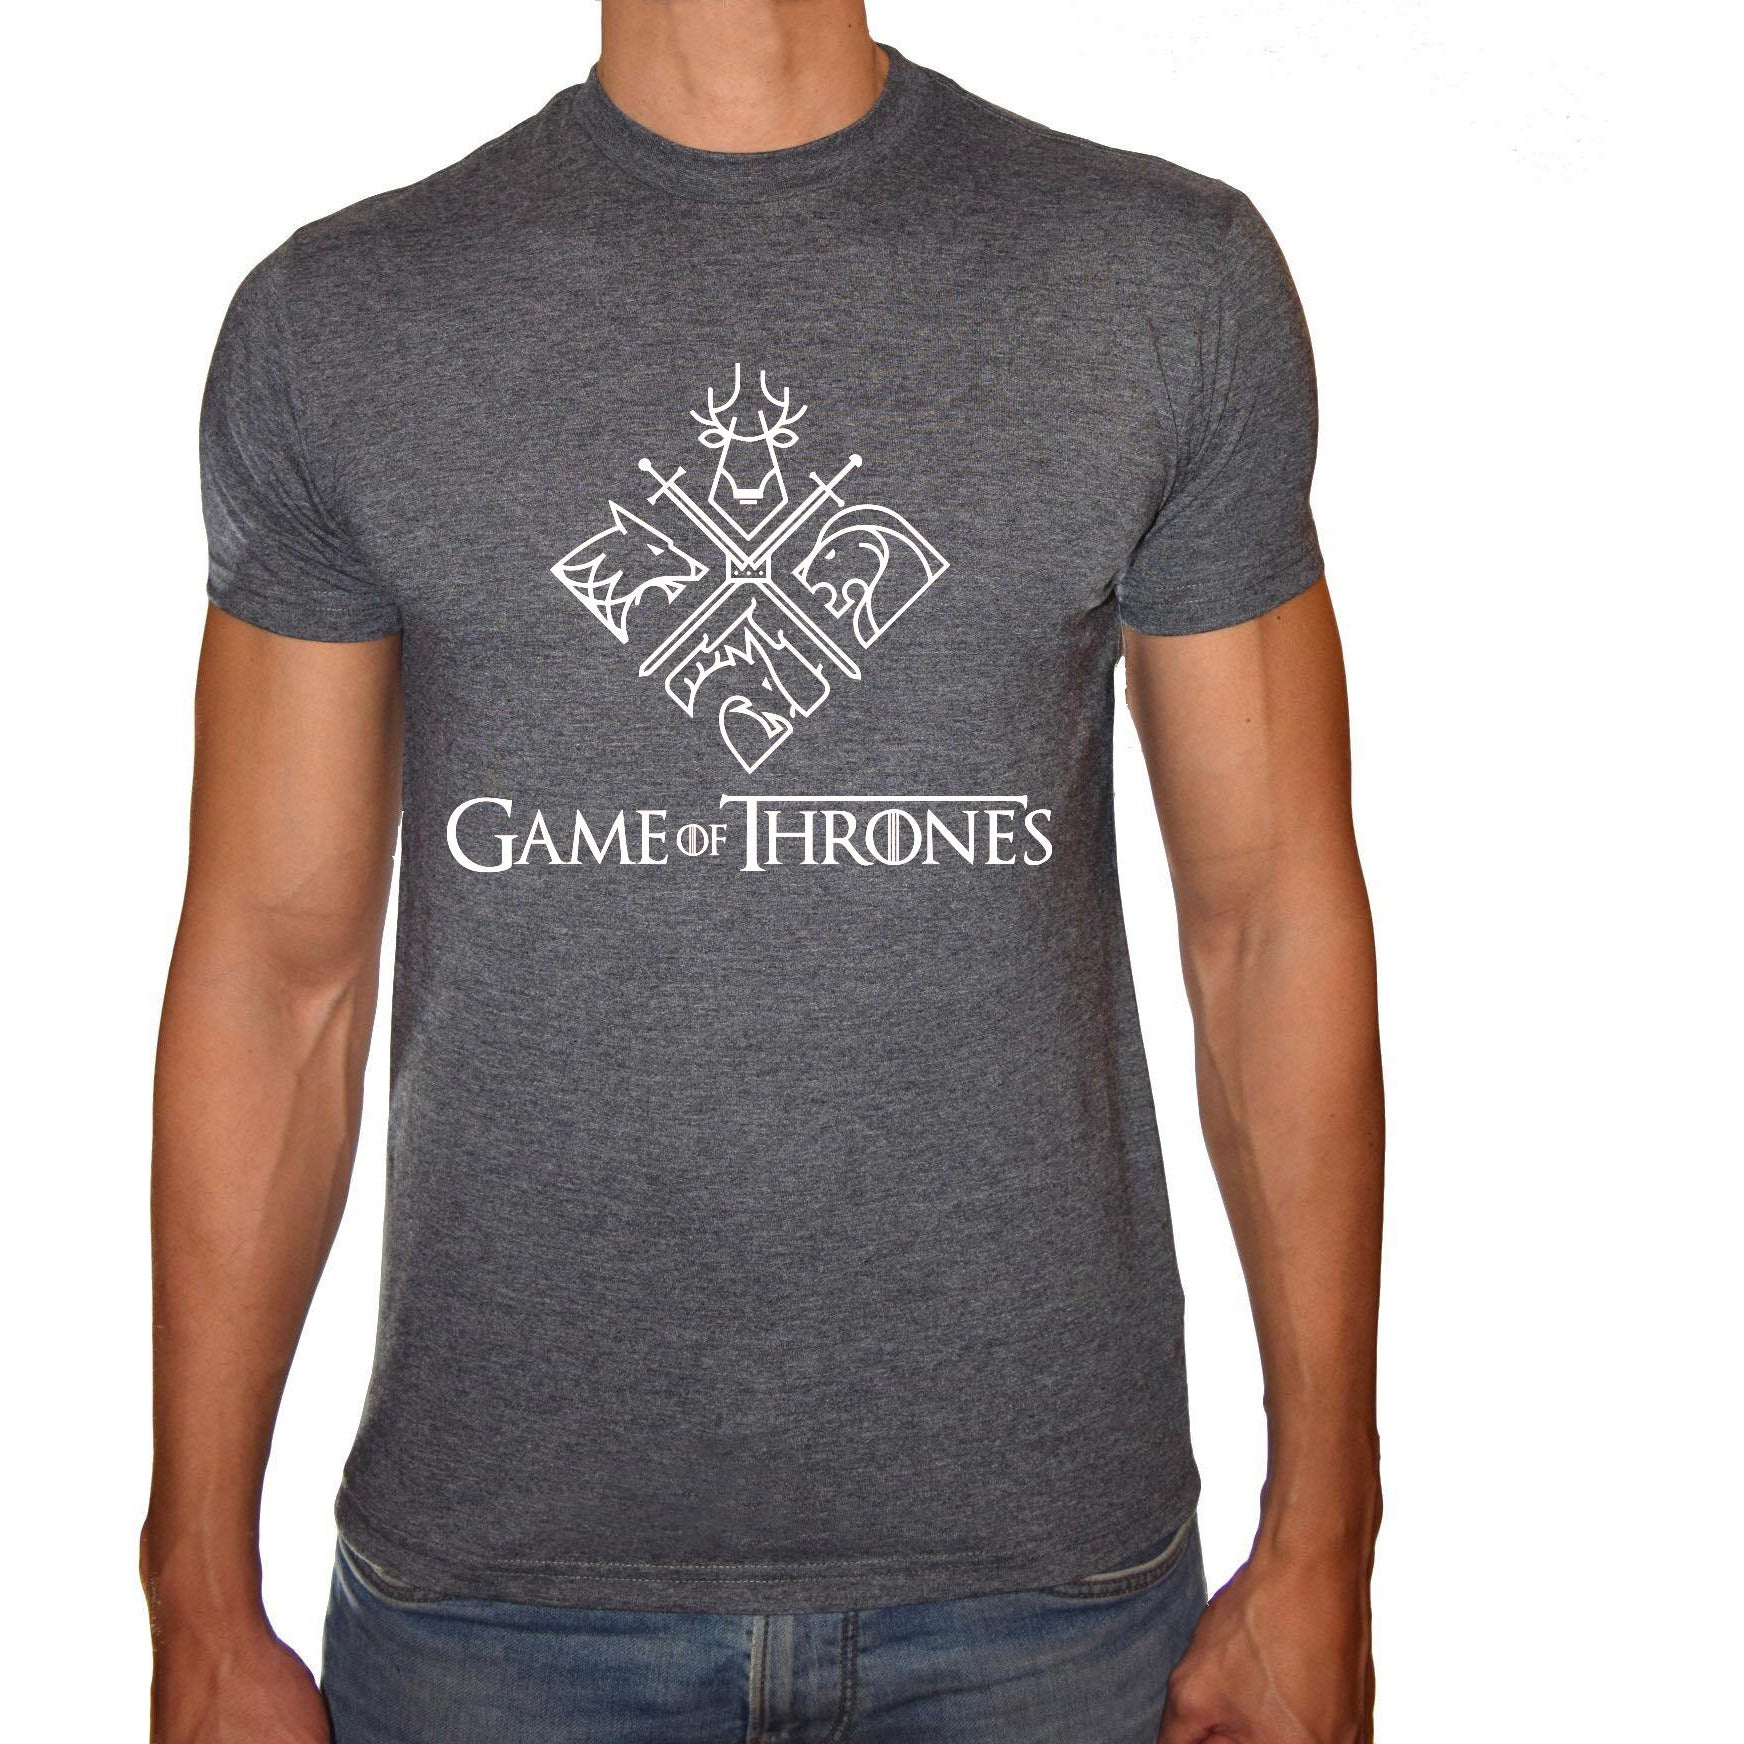 Phoenix CHARCOAL Round Neck Printed T-Shirt Men (Game of thrones - 4 characters)